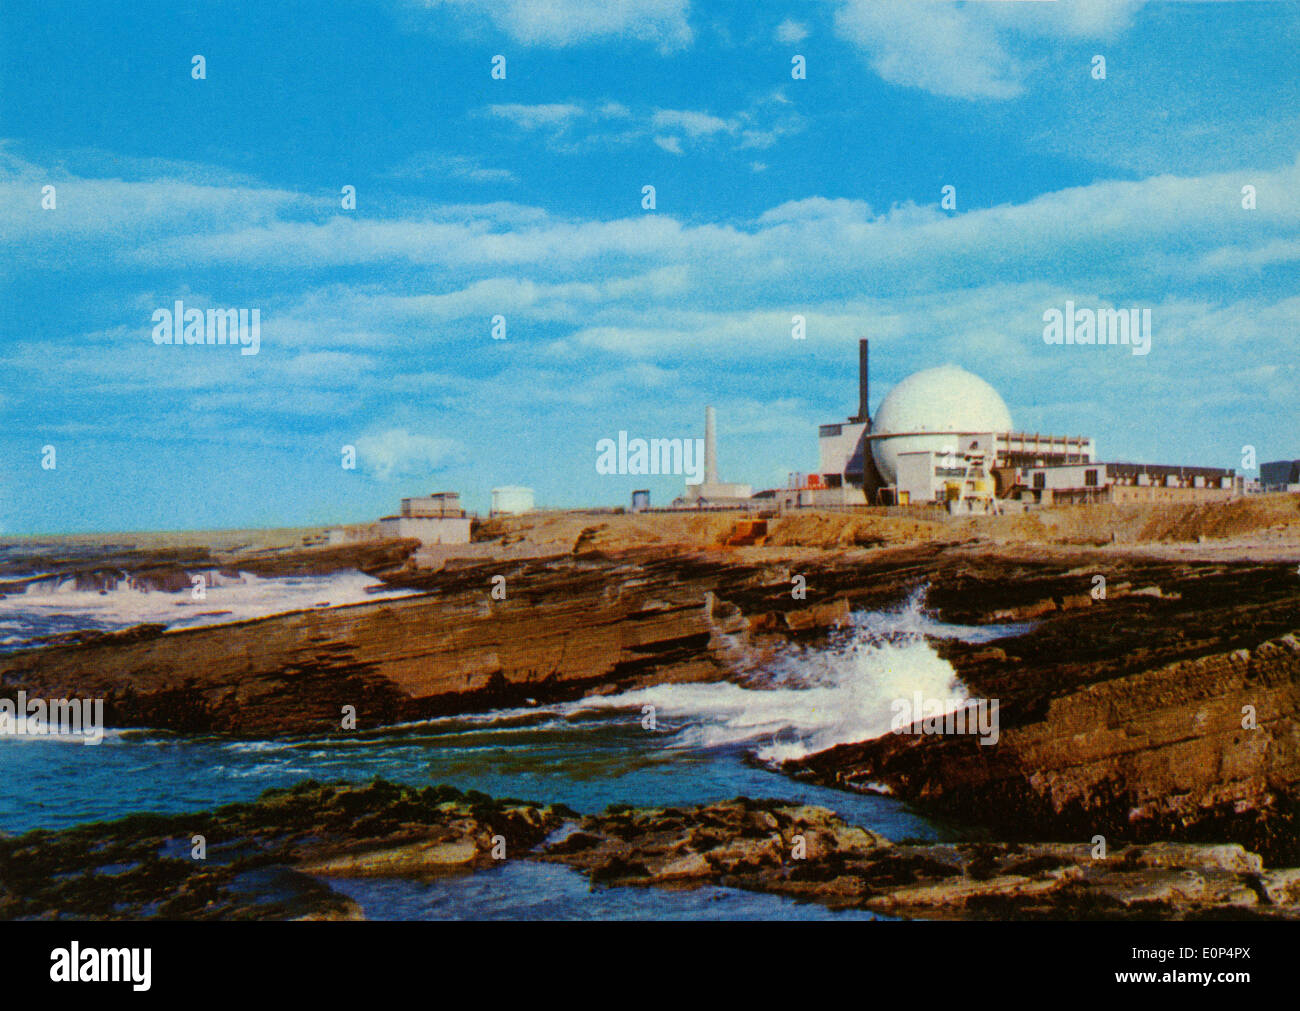 Vintage postcard of Dounreay Nuclear Power Station Caithness Scotland - Stock Image